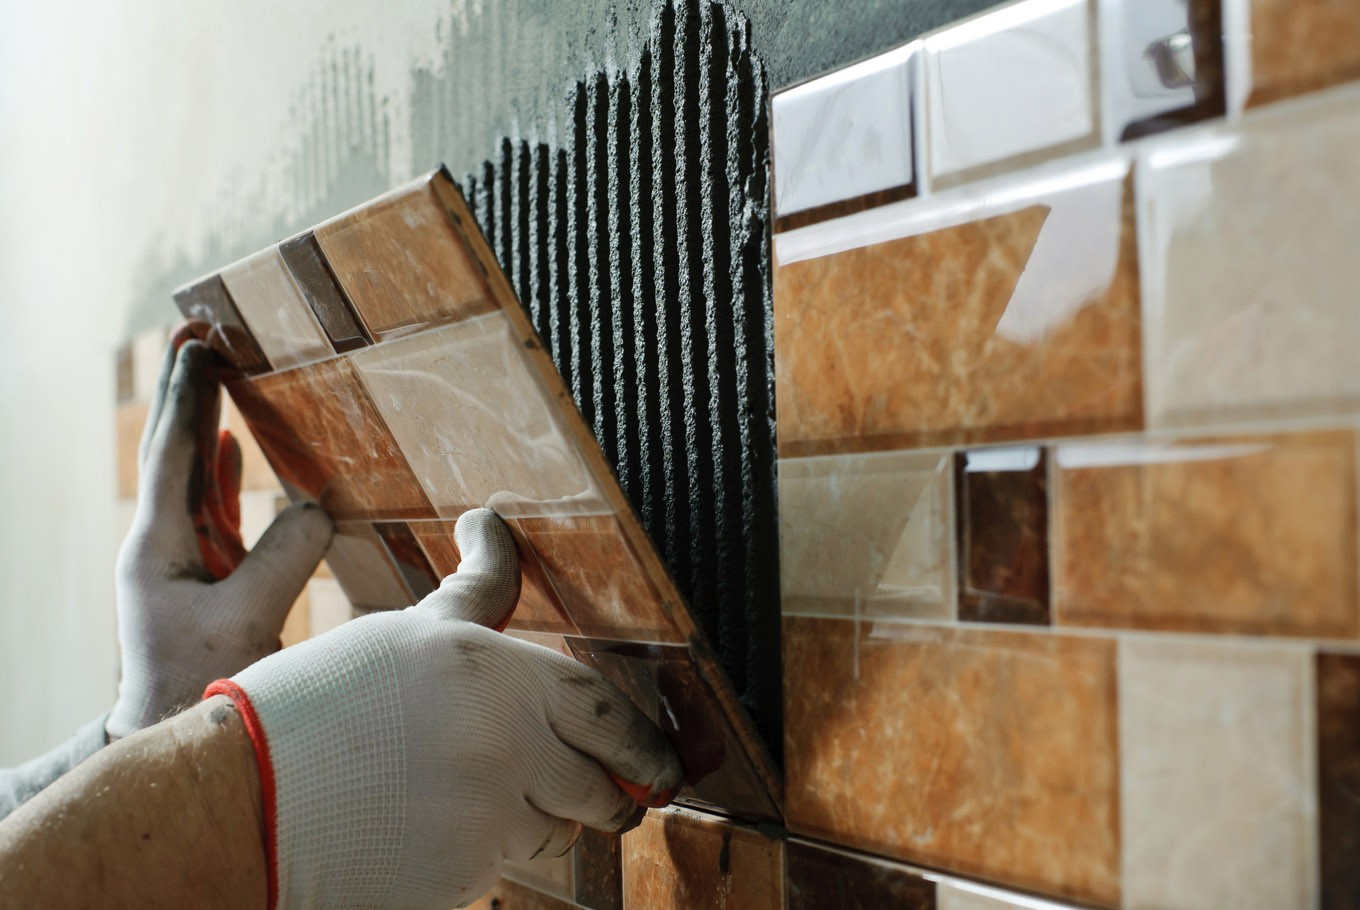 Ceramic tile producers worried about influx of Indian products